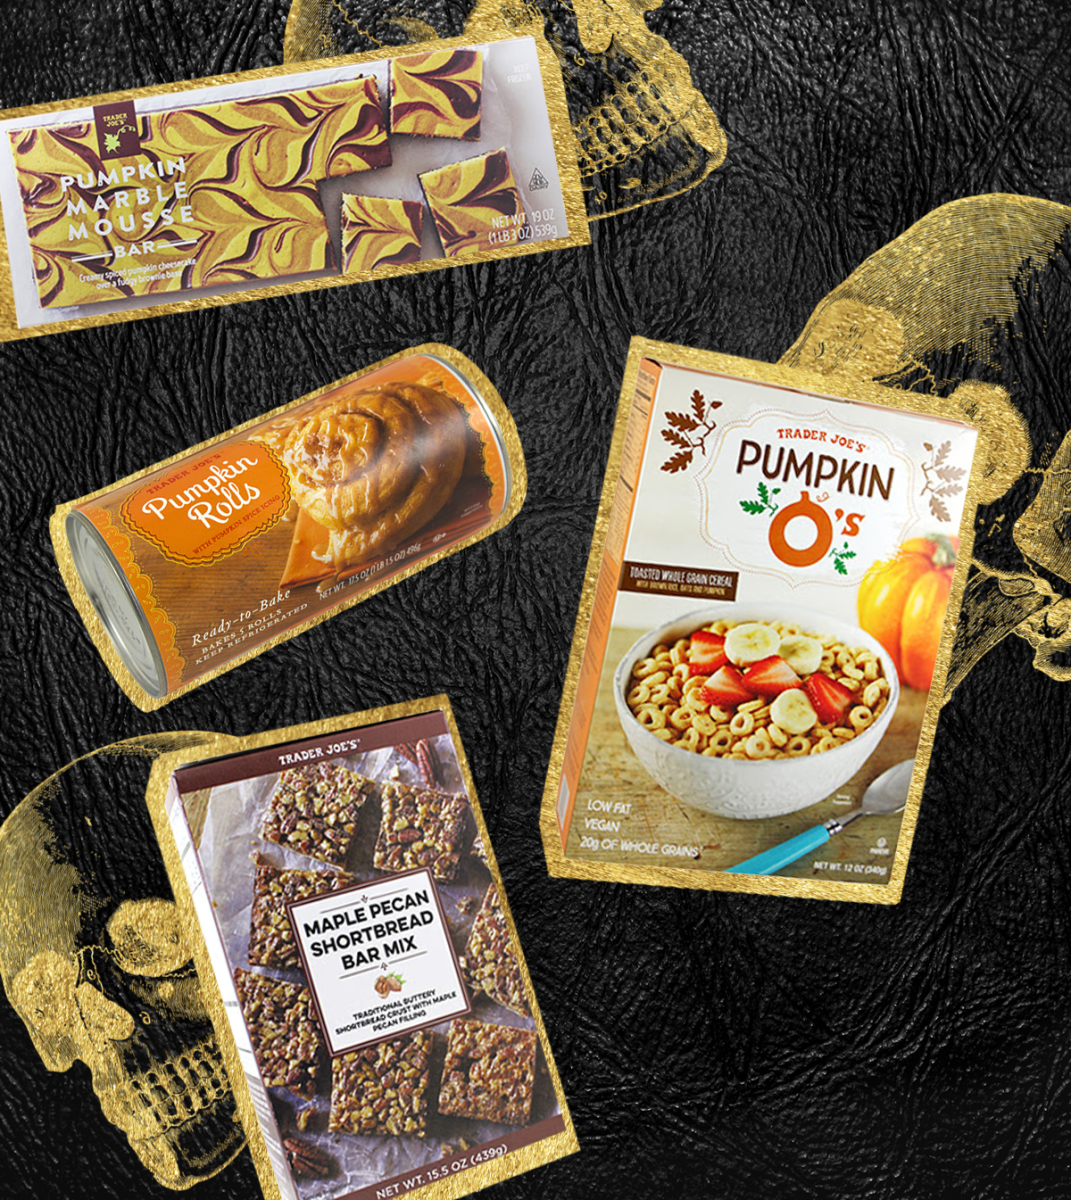 Pumpkin Marble Mousse Bars, $5.99 / Iced Pumpkin Rolls, $3.99 / Pumpkin O's Cereal, $2.69 / Maple Pecan Shortbread, $3.99